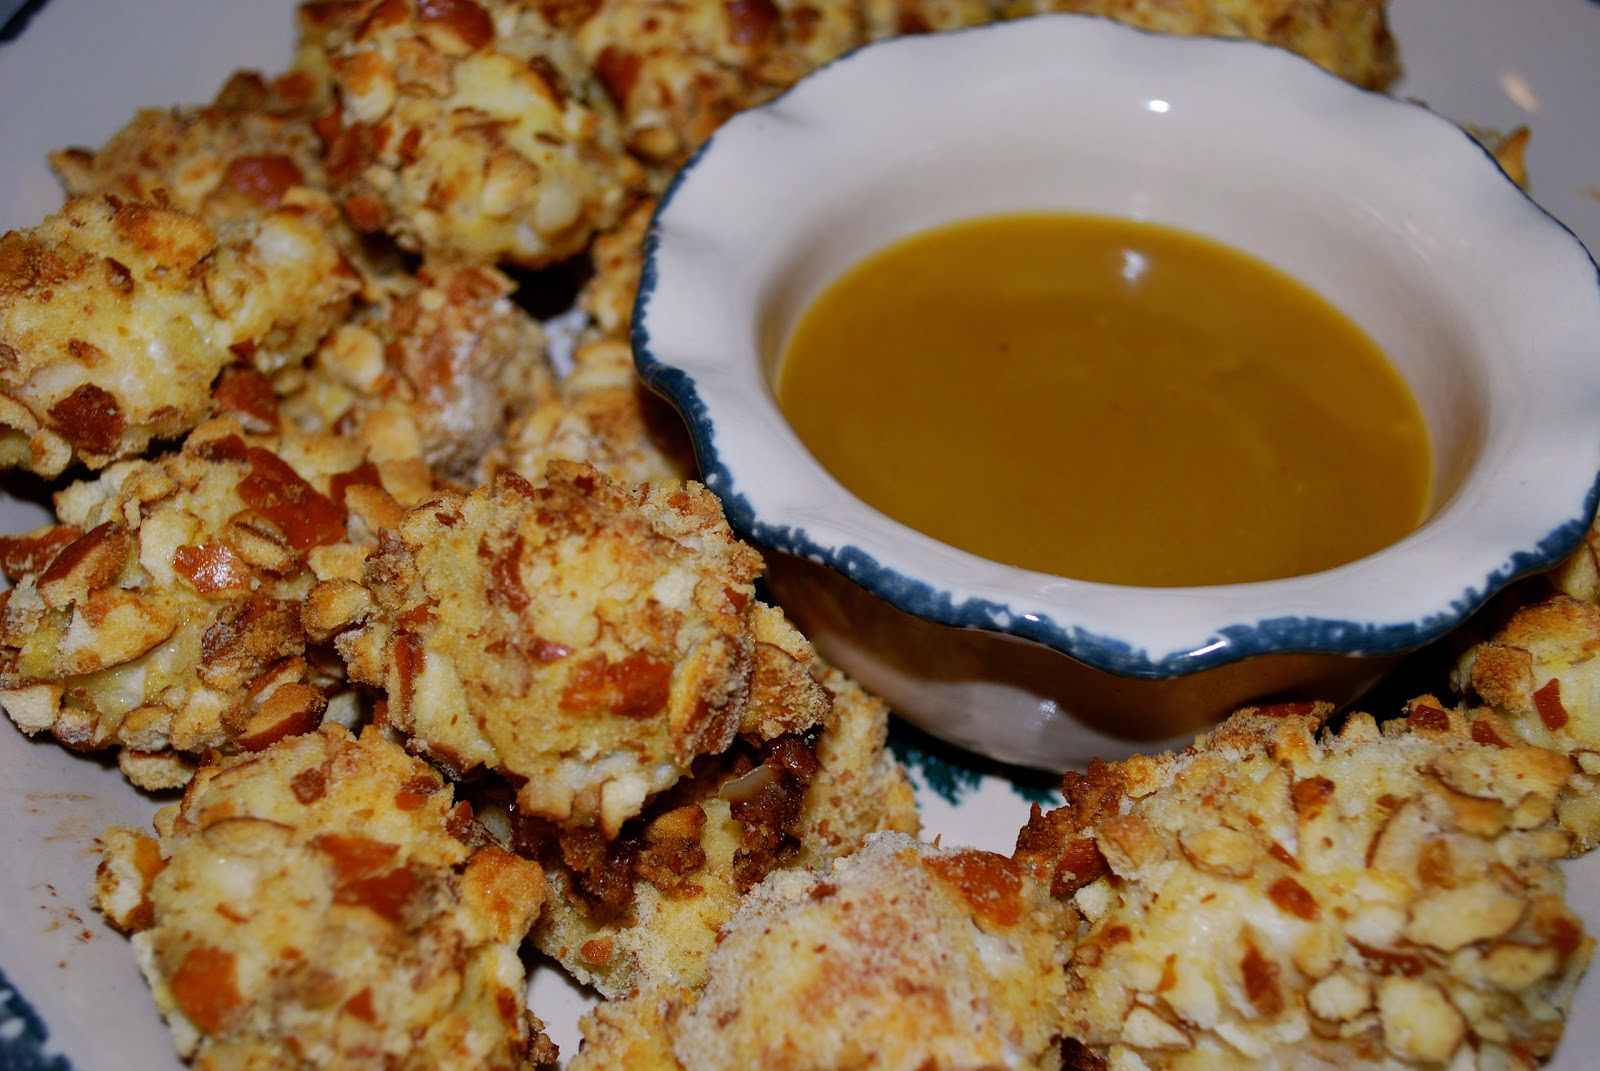 ... : Pretzel Coated Chicken Nuggets with Honey Mustard Dipping Sauce